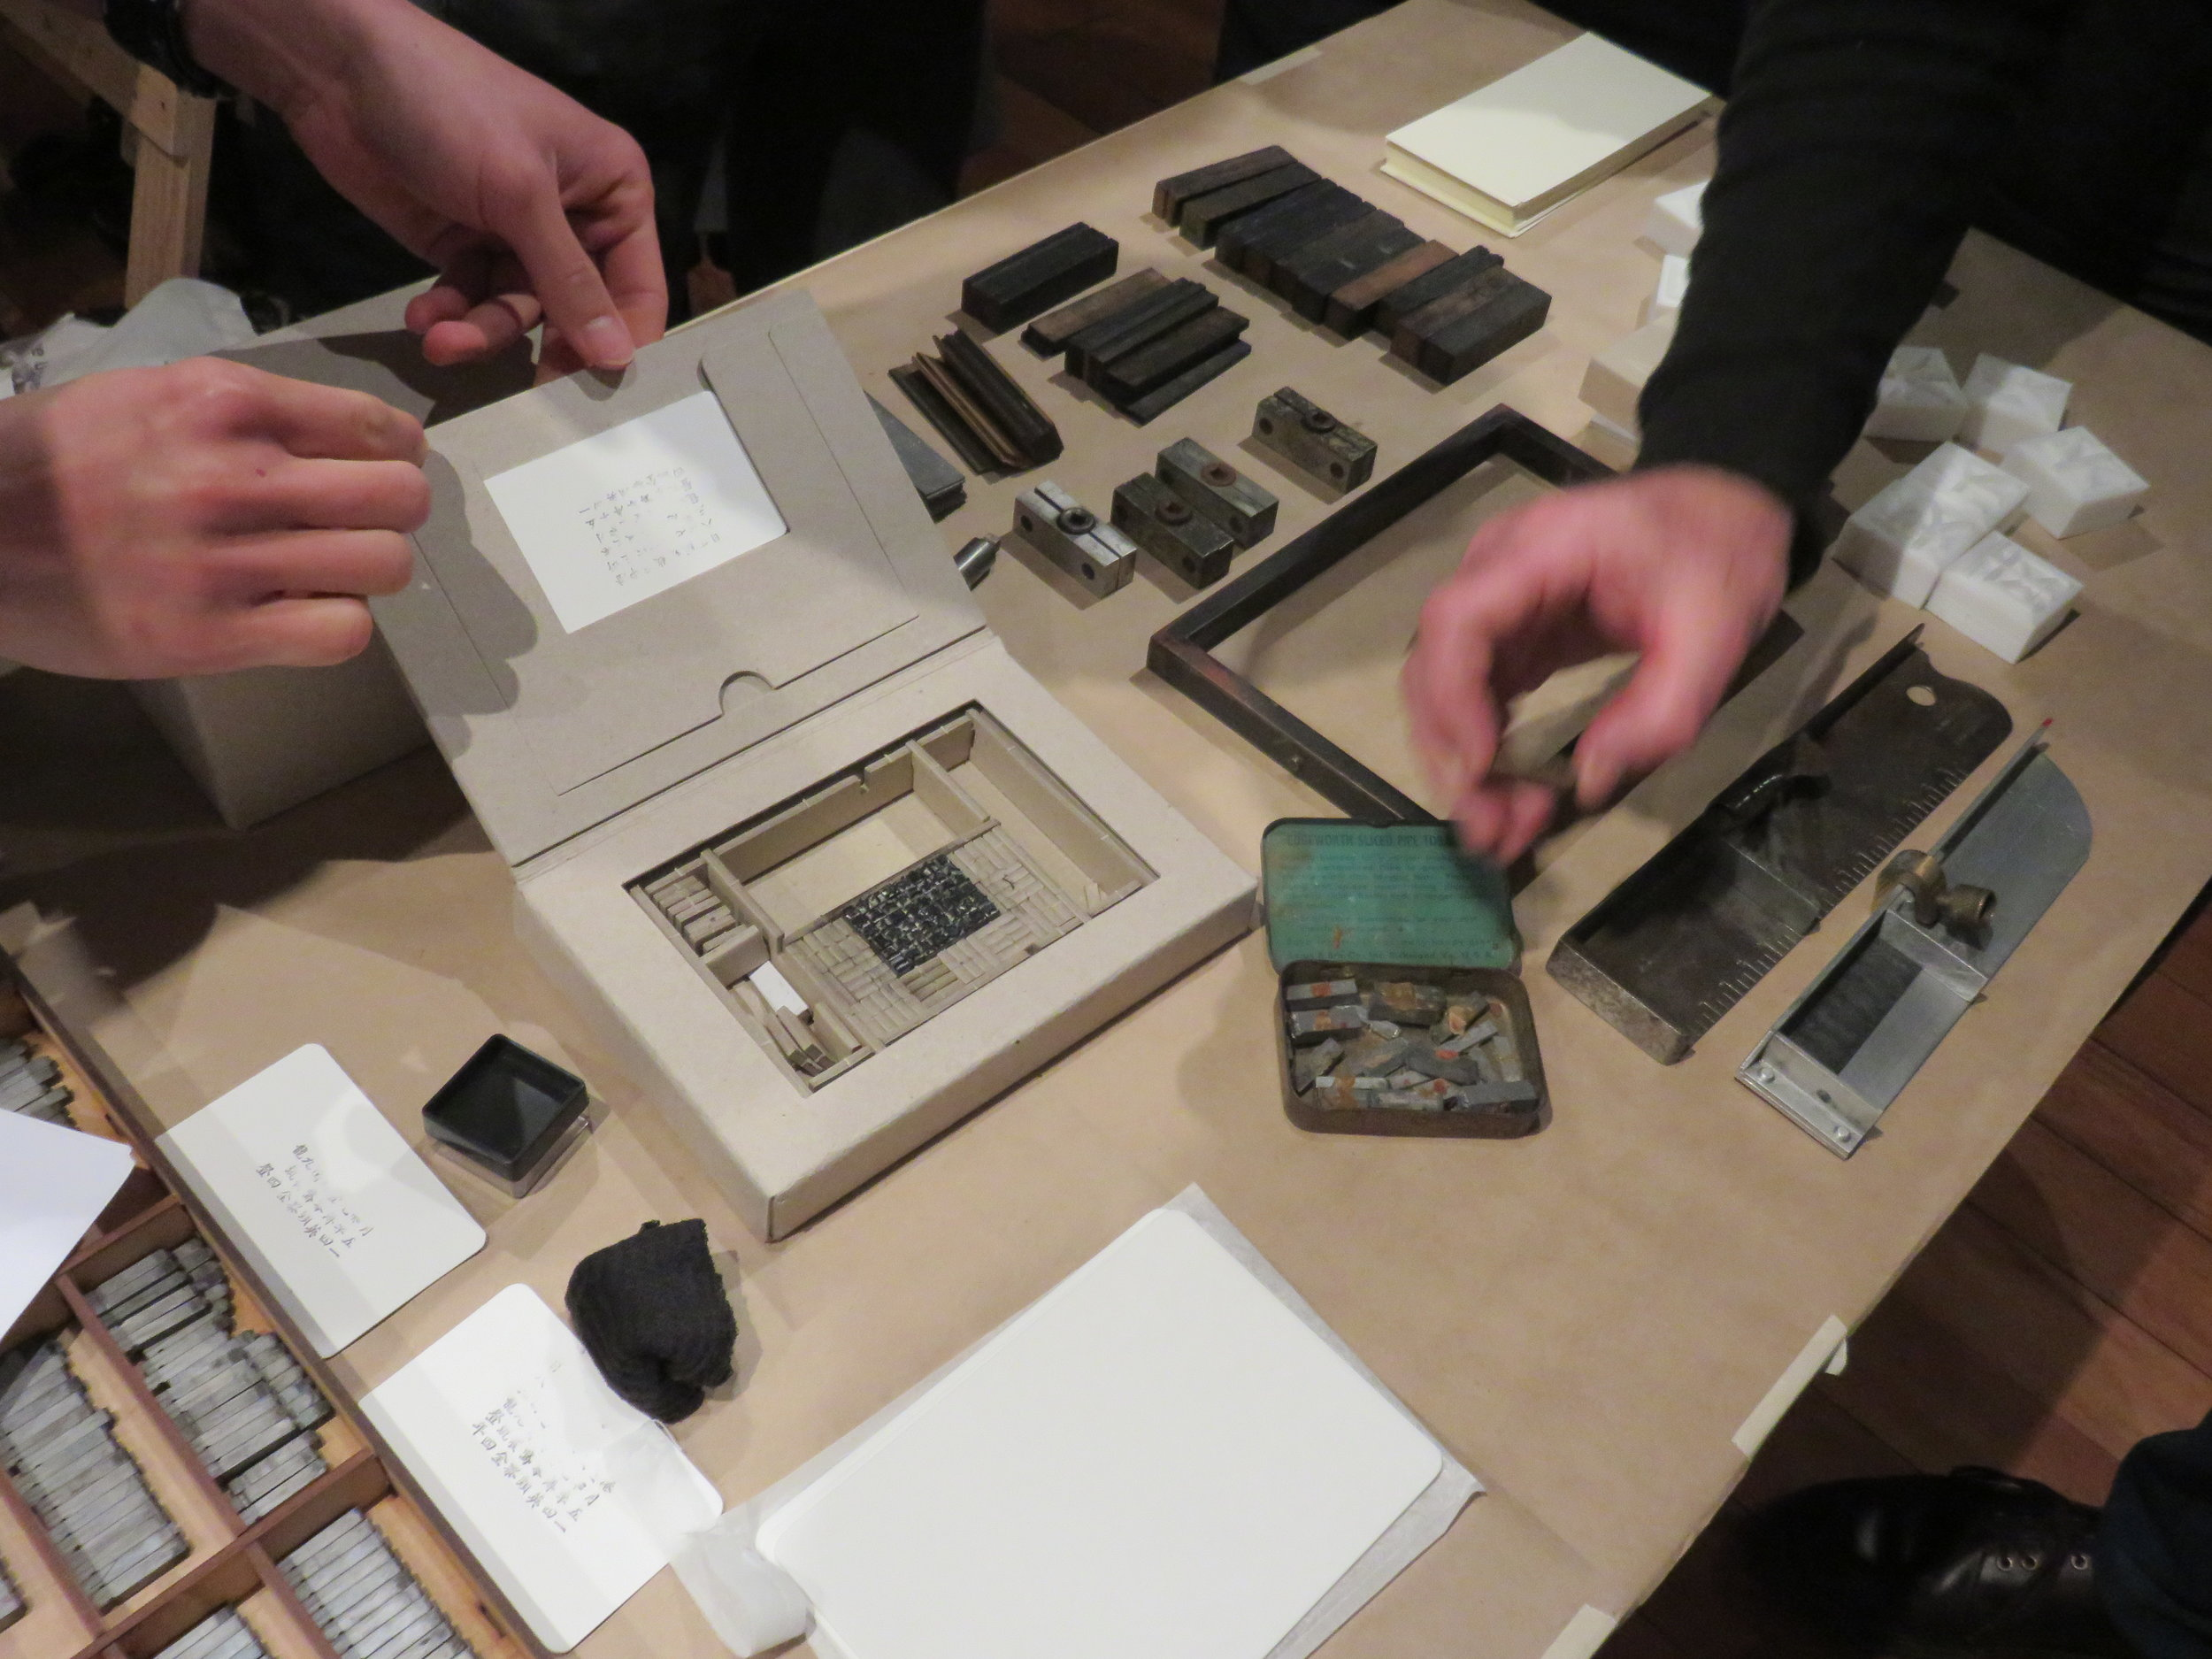 Chinese Letterpress and Poetry: a discussion, 18 September, Enjoy Public Art Gallery. Photo by Sam Buchanan